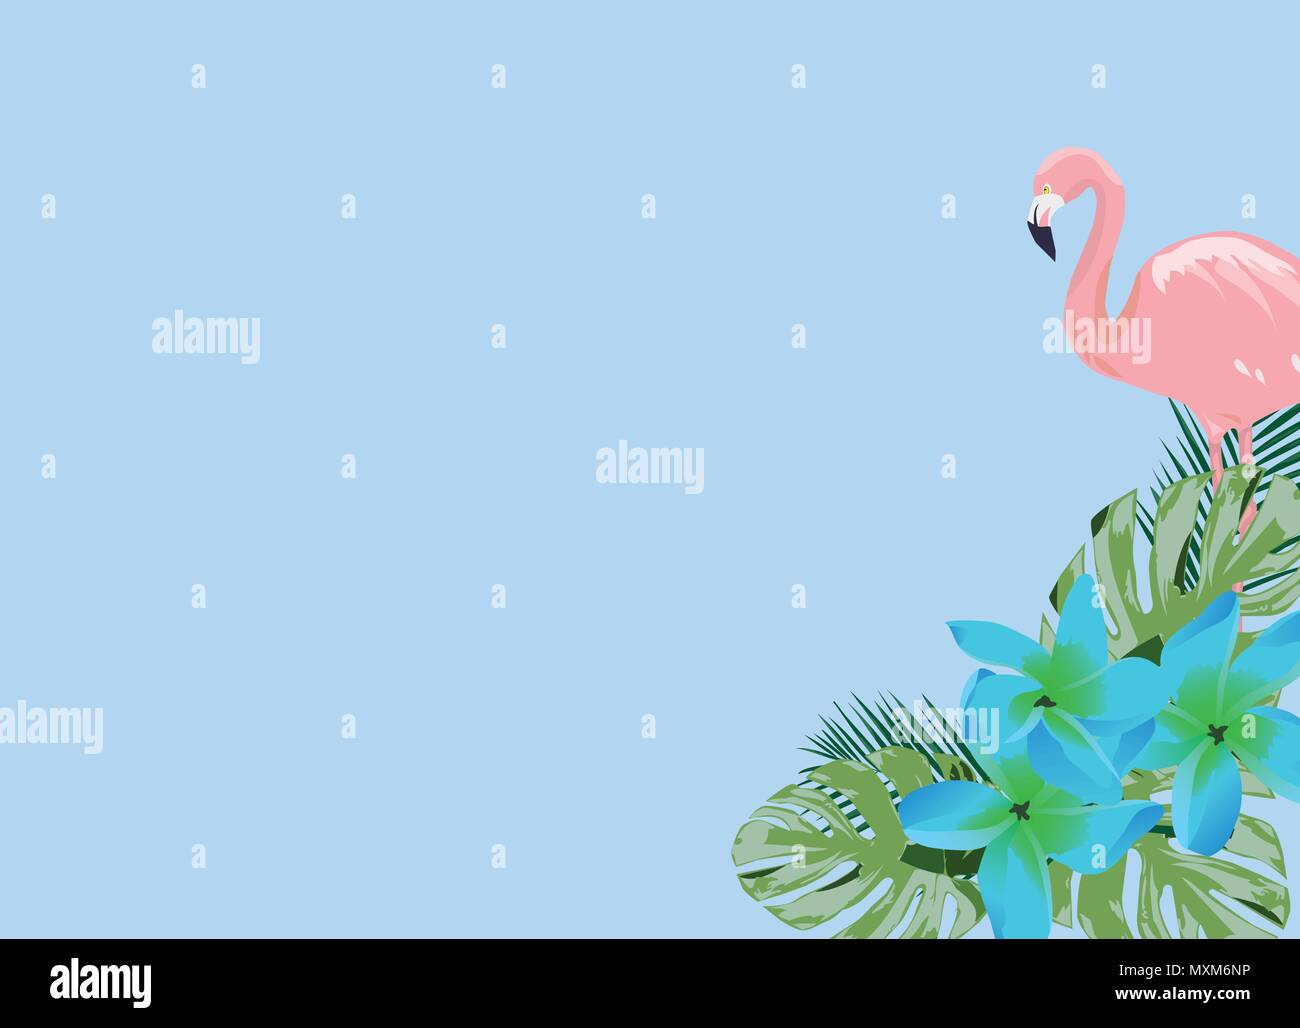 Vector Illustration Of A Flamingo And Blue Tropical Flowers Stock